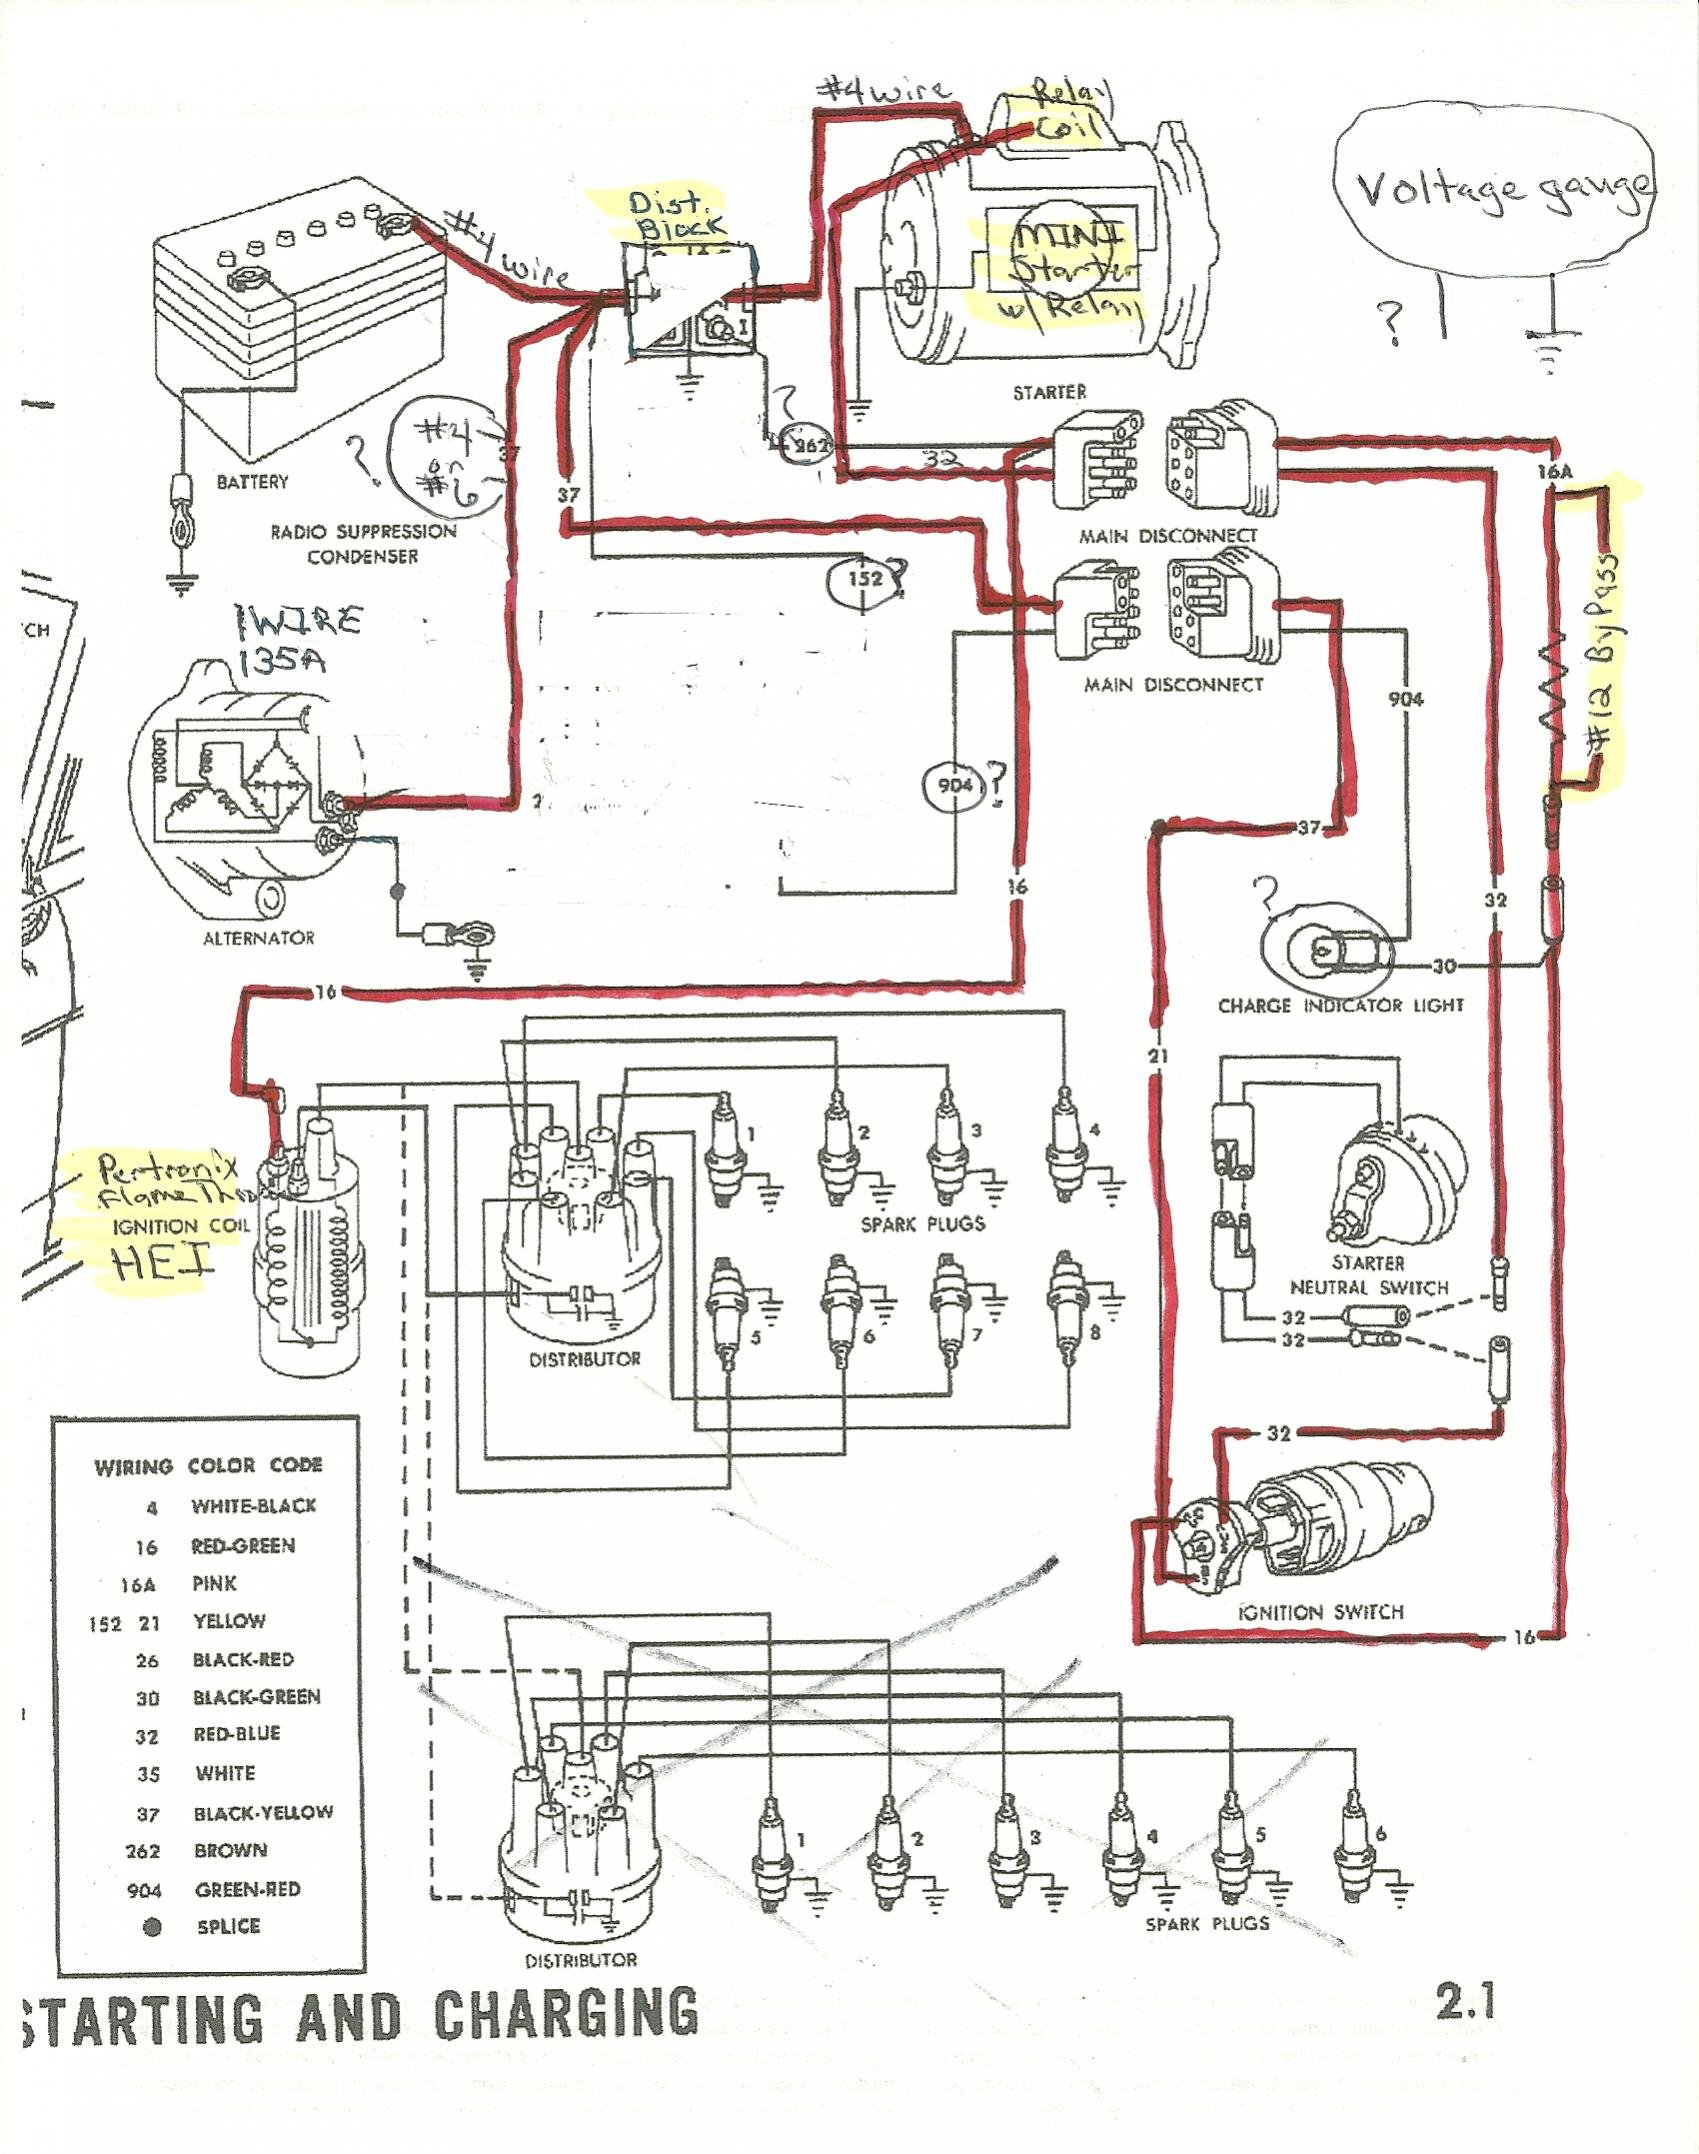 Dodge Dual Field Alternator Wiring Library Diagram 1965 Starter And Distributor Ford Mustang Forum Diesel Voltage Regulator